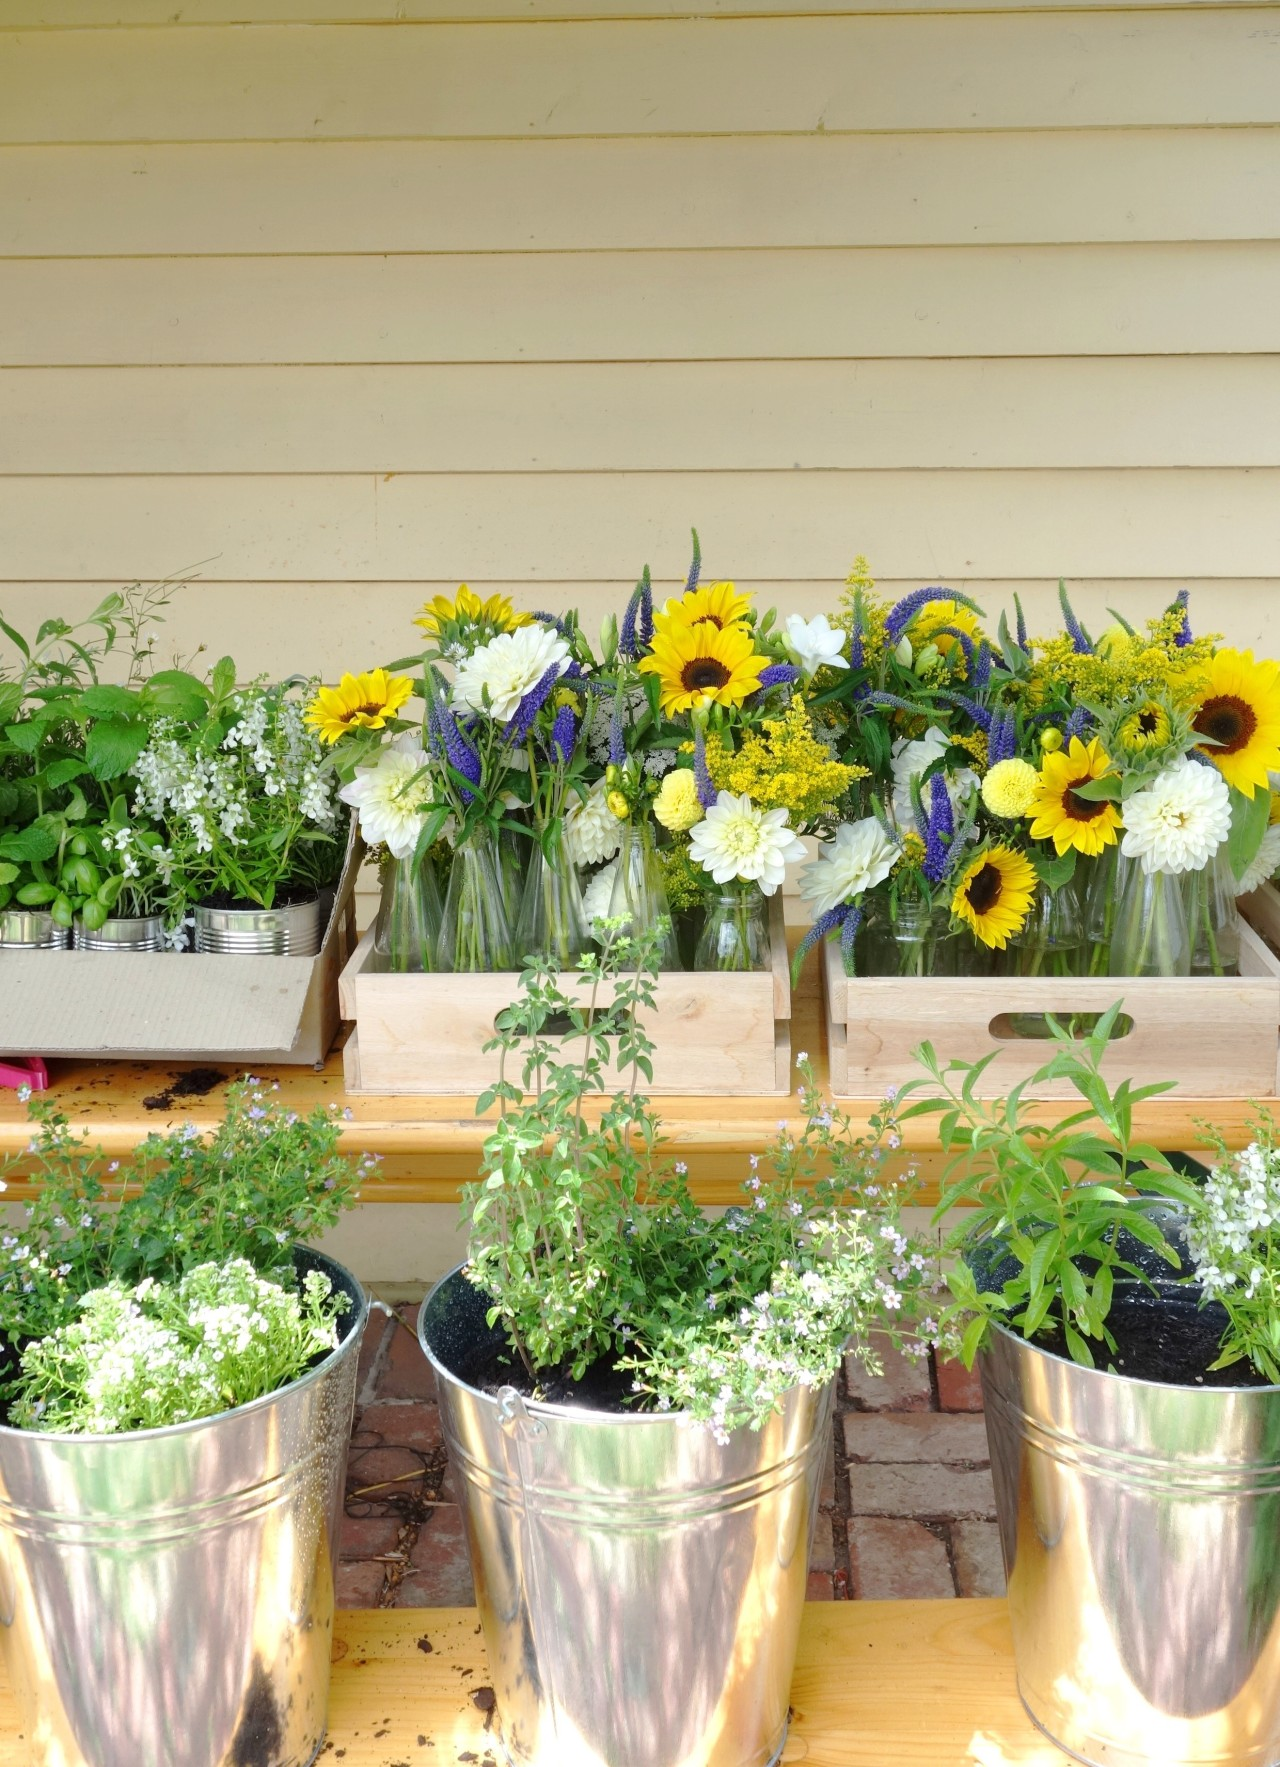 More of the sunflowers and veronica table arrangements